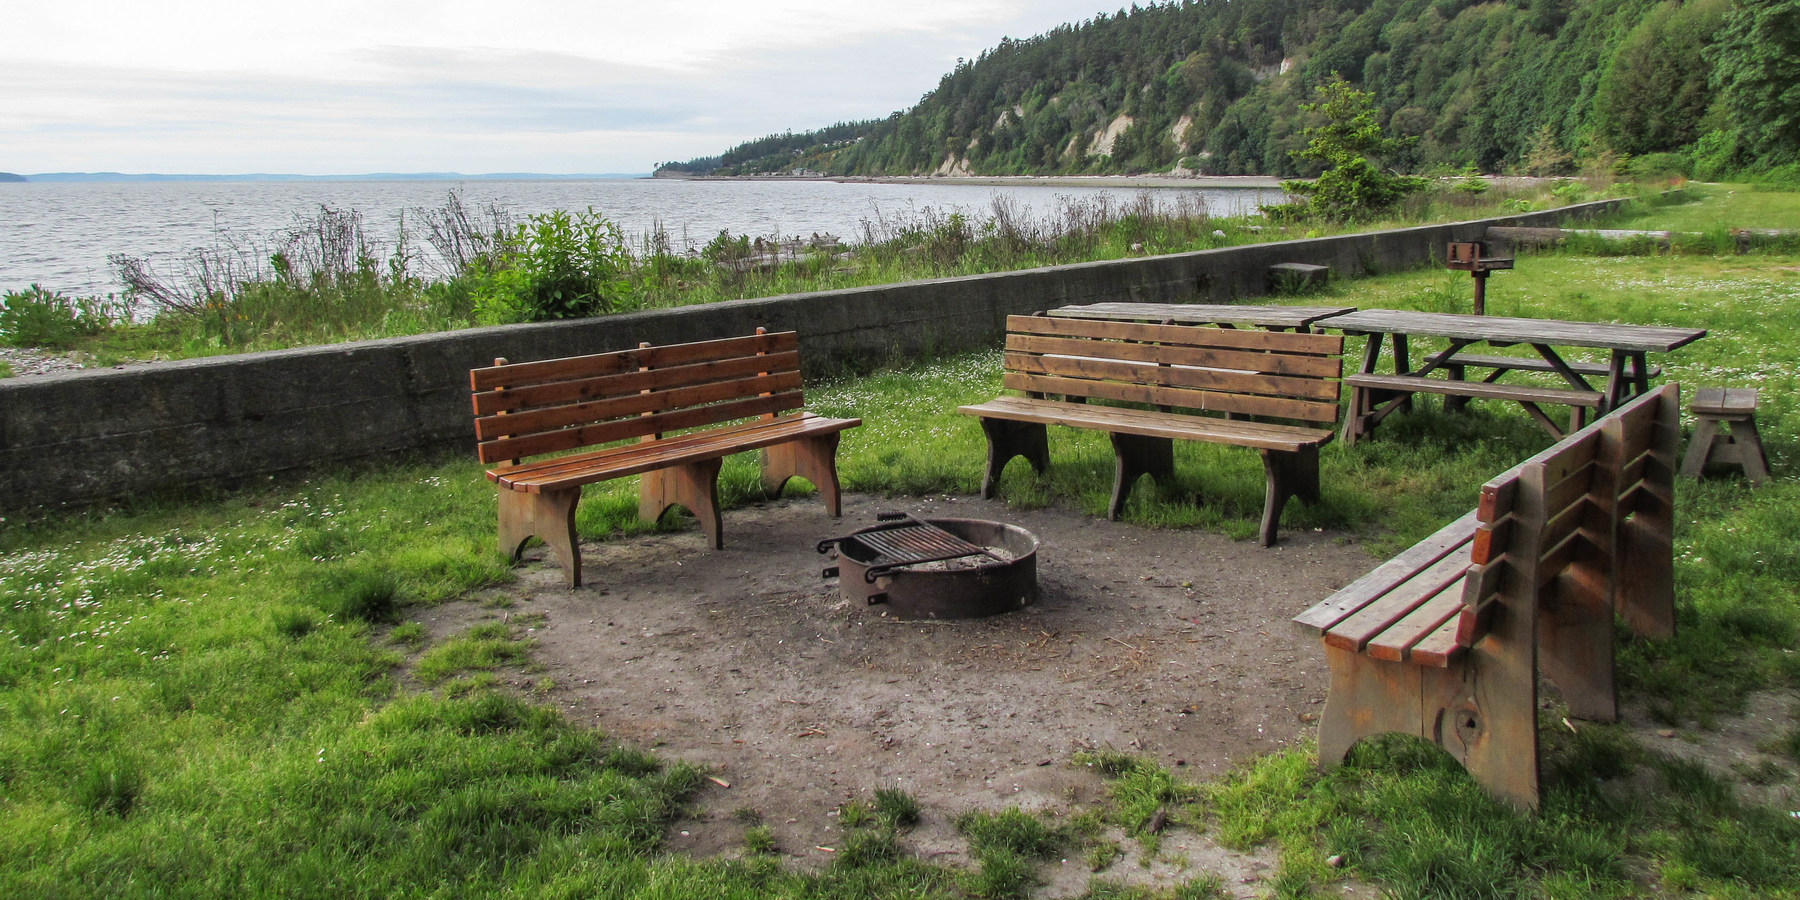 Cama Beach State Park Reservations